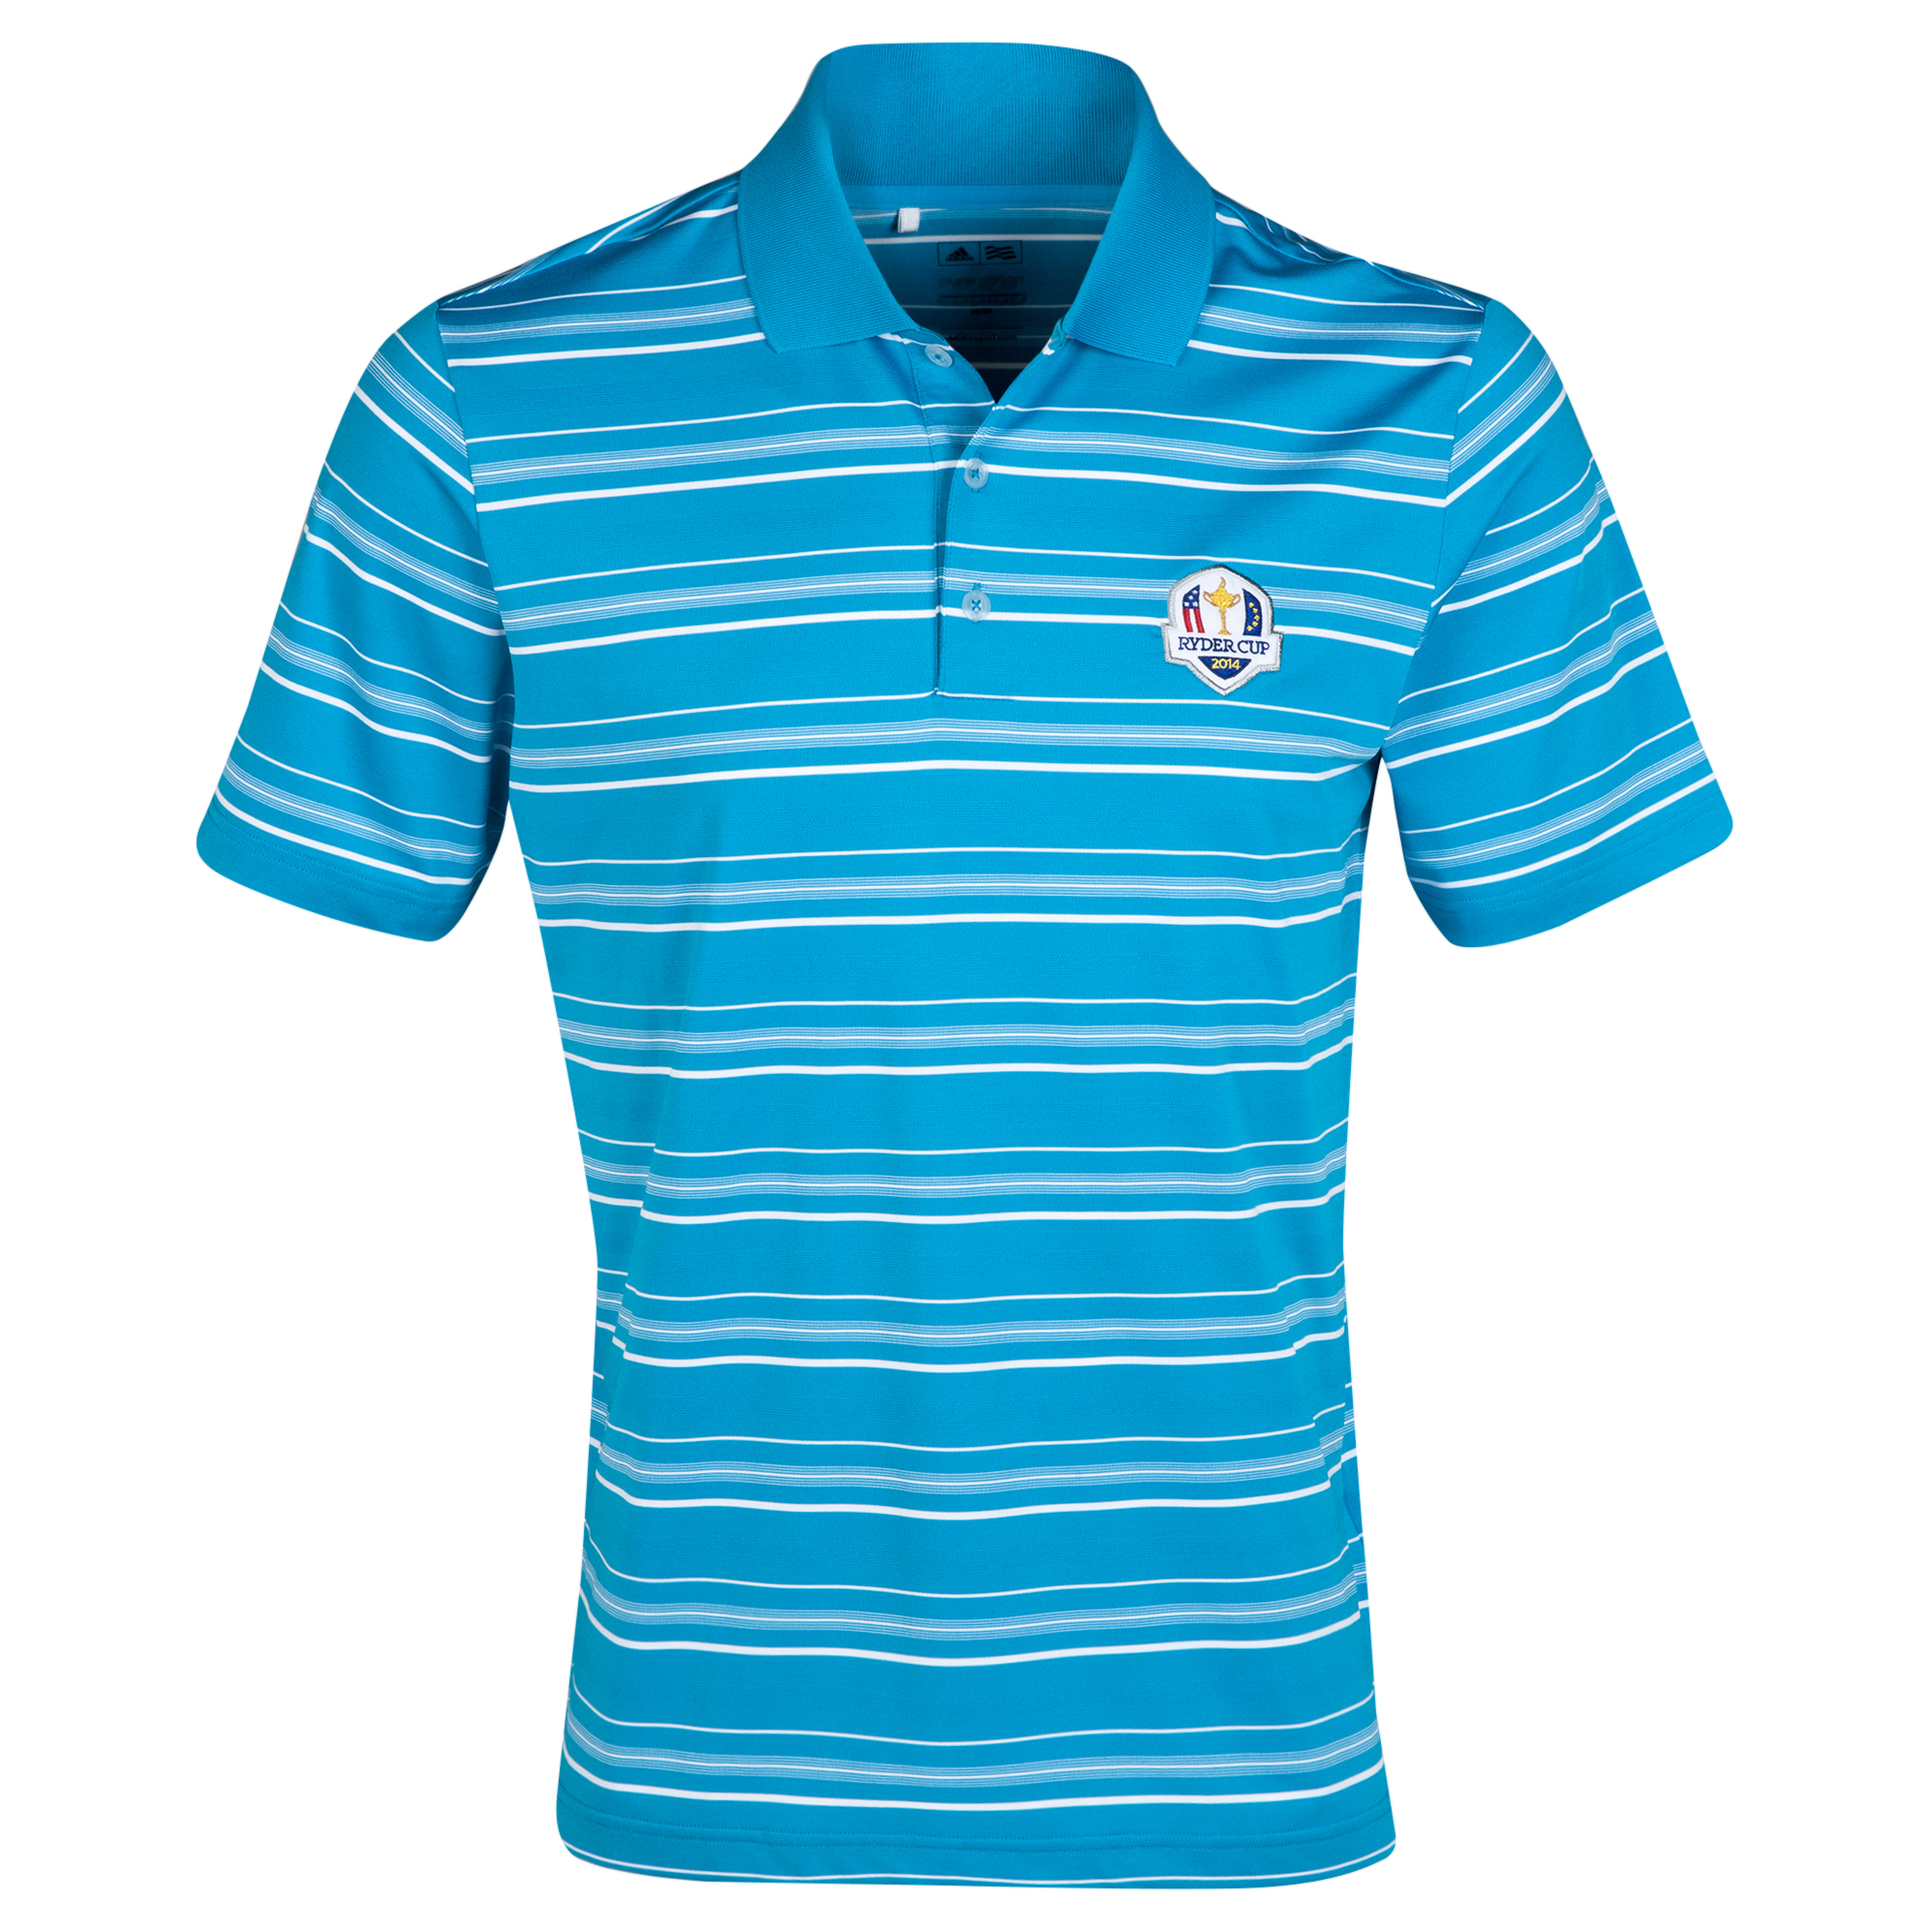 The 2014 Ryder Cup ClimaLite 2-Colour Stripe Polo Sky Blue